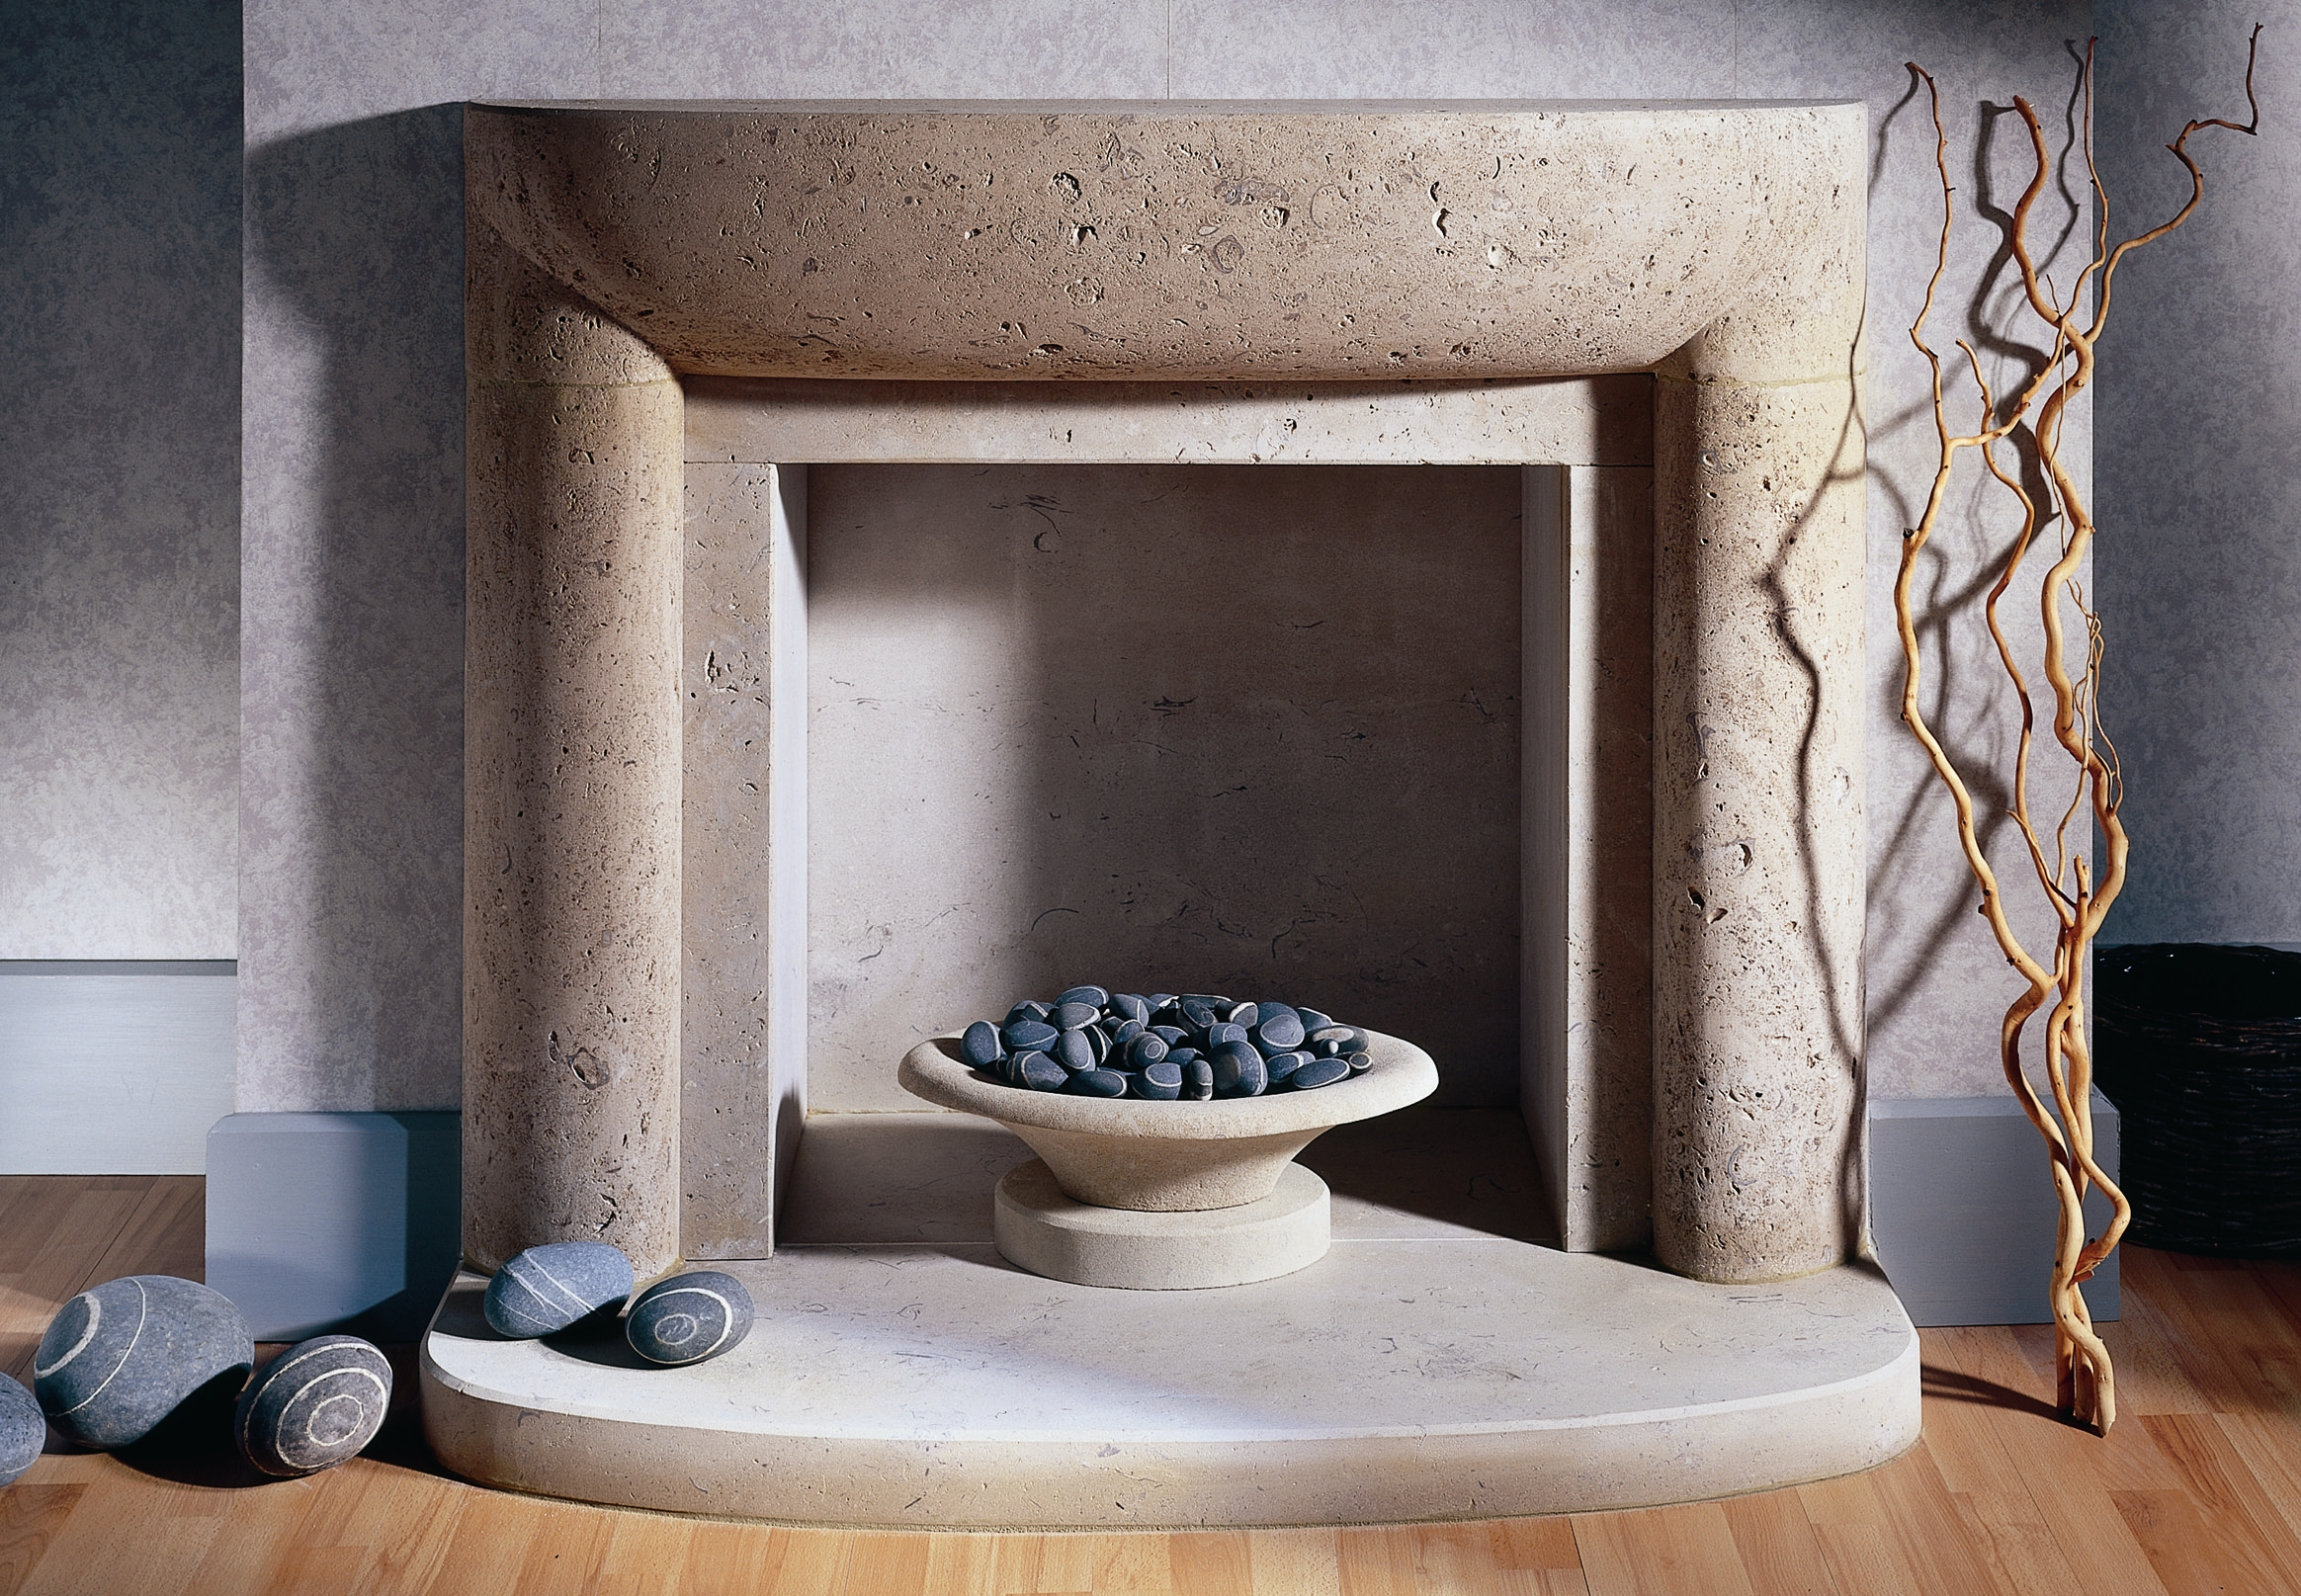 24. Curved Portland Roach stone fire surround with decorative bowl – Chelsea